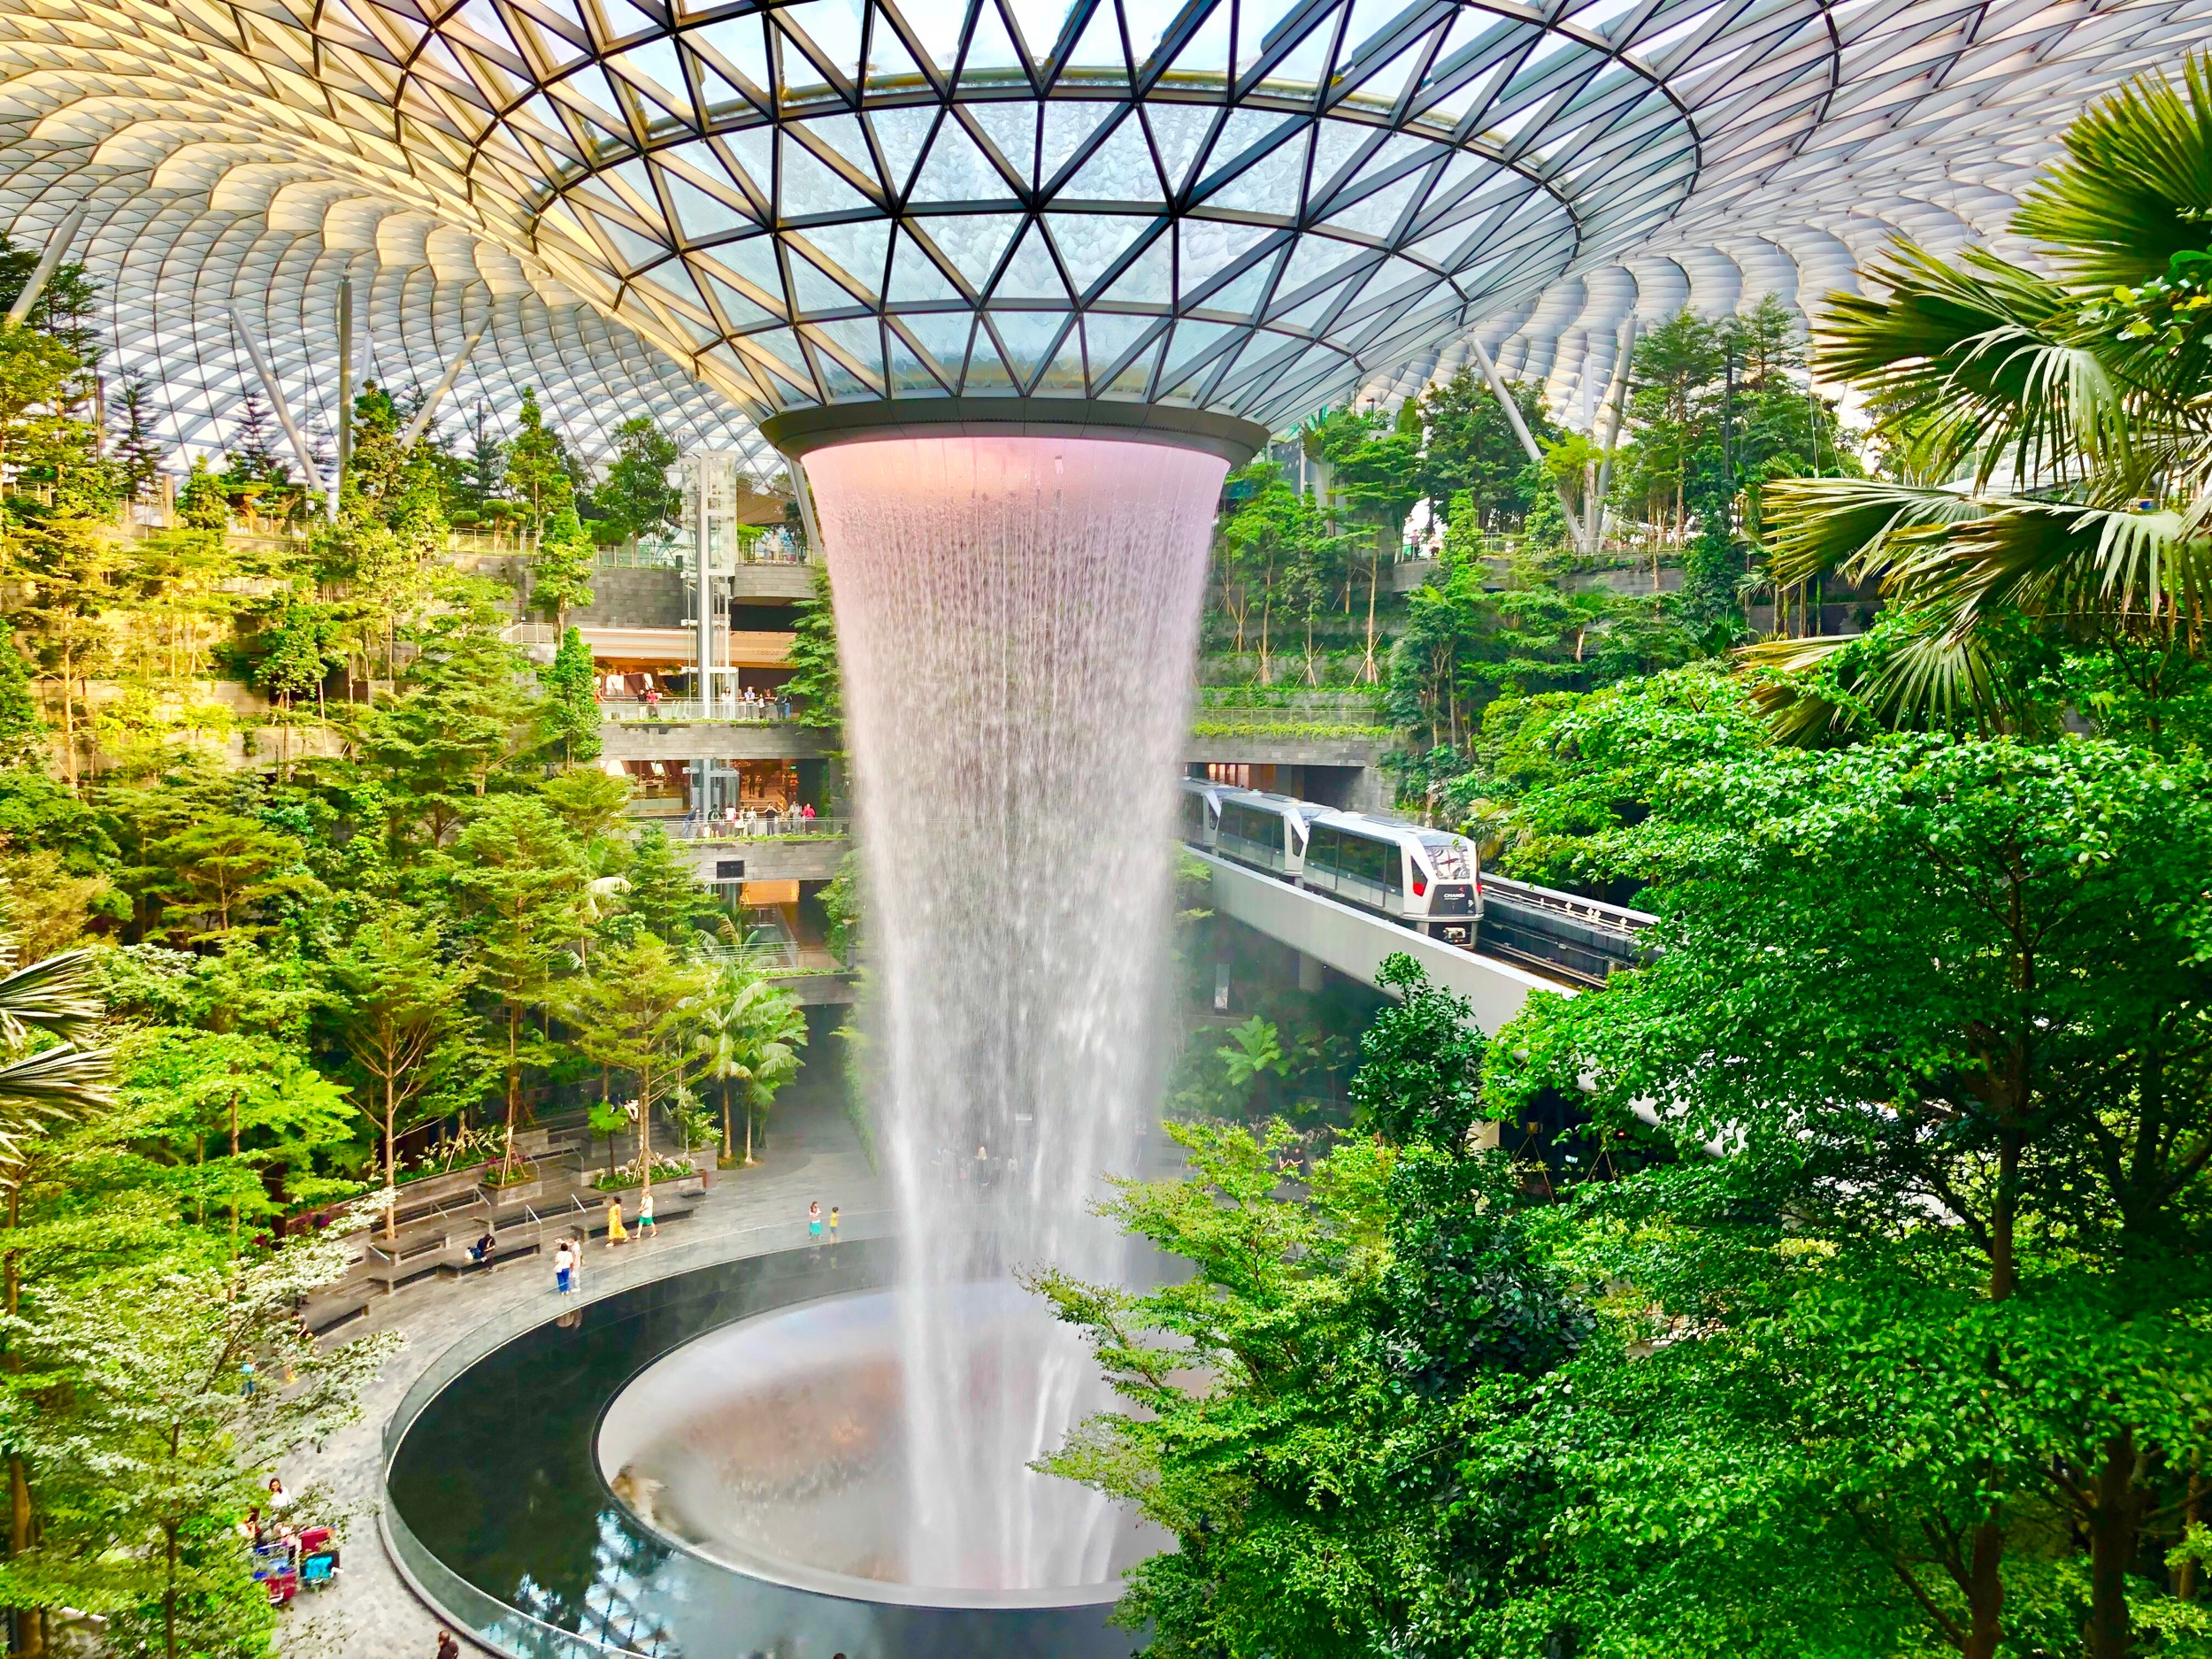 Singapore Airport tallest indoor waterfall at the Jewel in Changi Airport